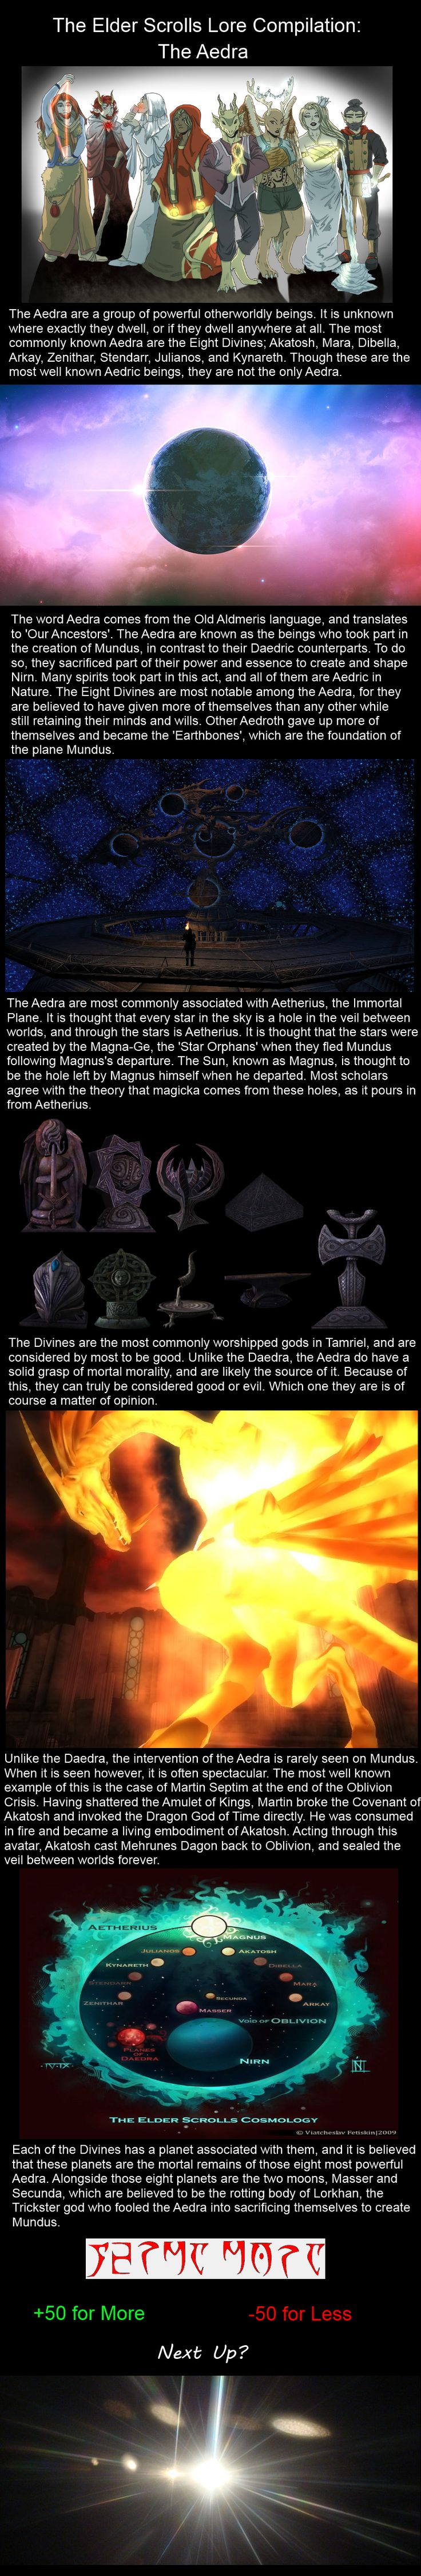 Elder Scrolls Lore 2: The Aedra  // funny pictures - funny photos - funny images - funny pics - funny quotes - #lol #humor #funnypictures